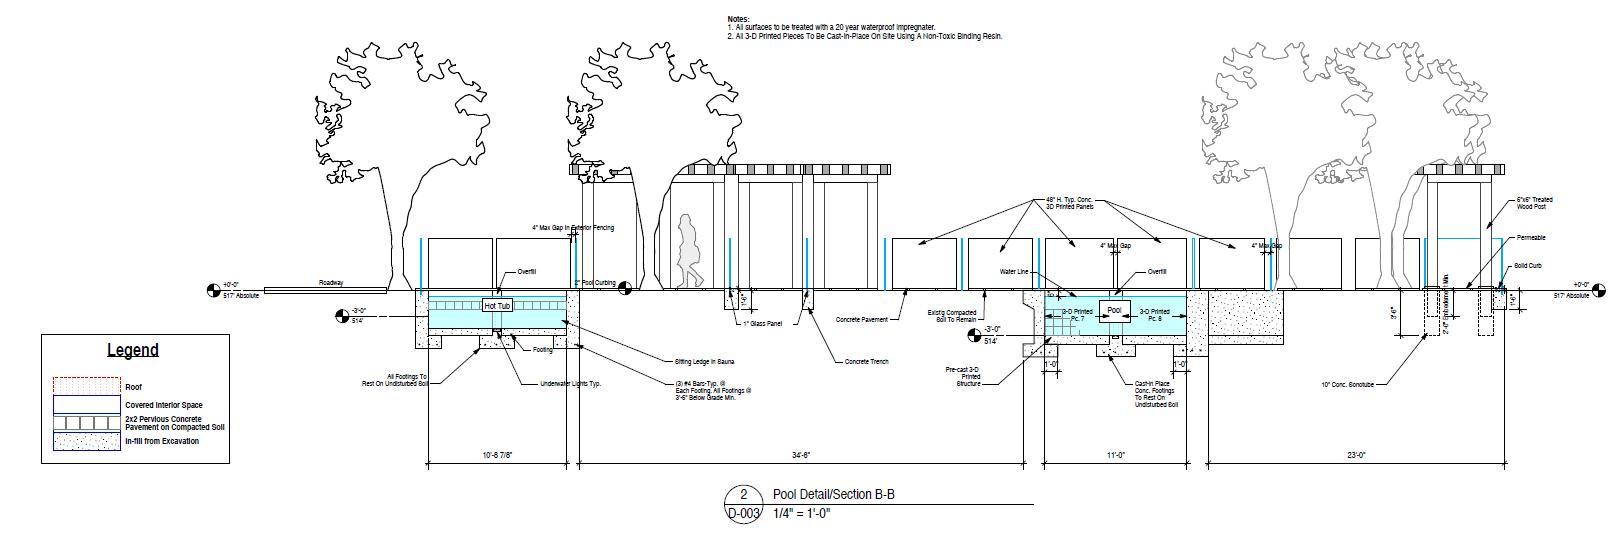 Pool Detail Plans (click to enlarge)